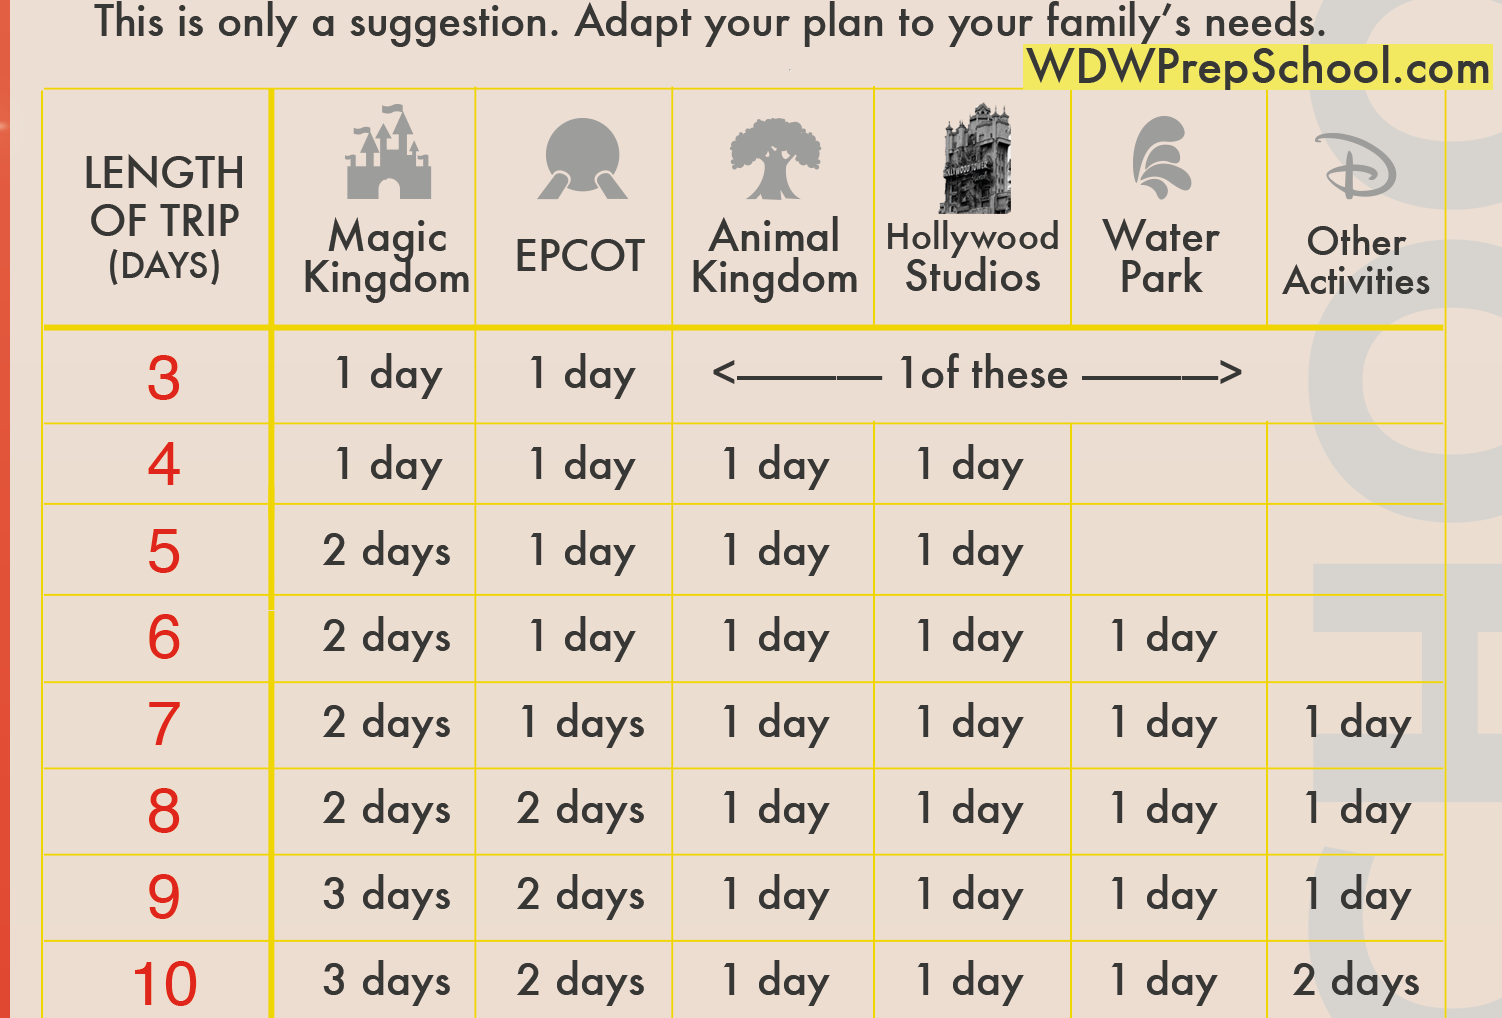 This is just a sample for how to set your daily visit plan. Source from WDWPrepSchool.com